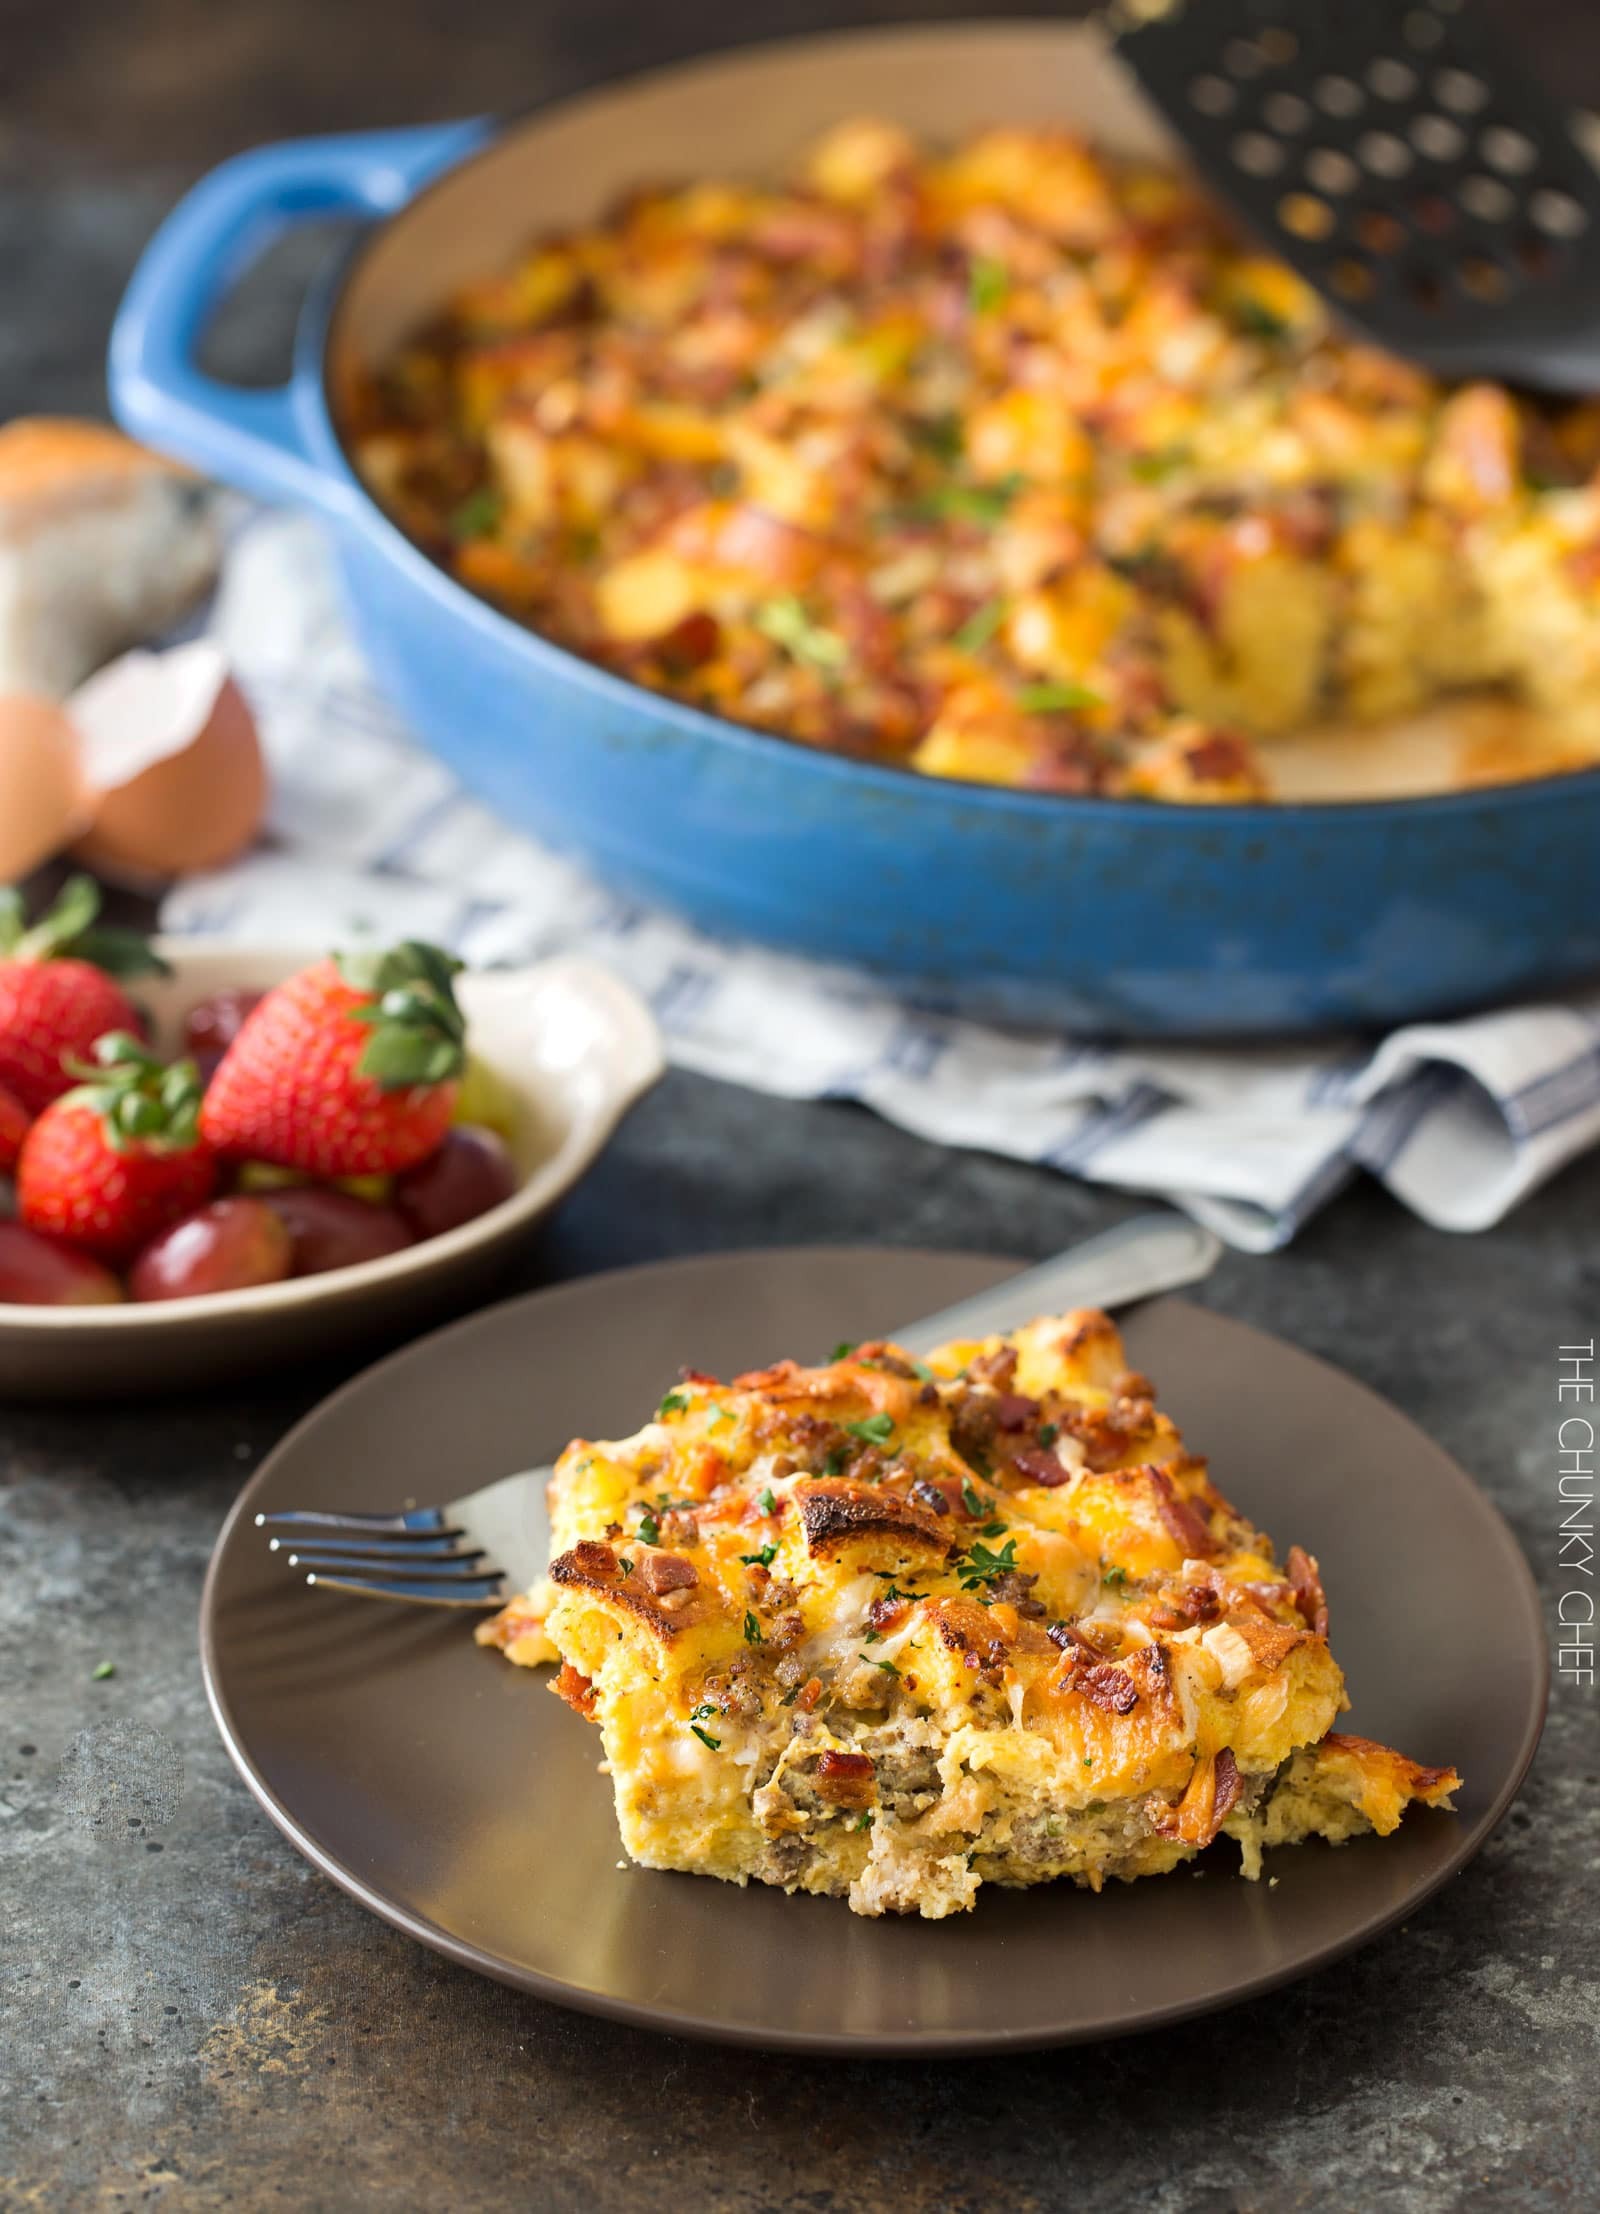 16 Easy Breakfast Casseroles So You Can Sleep In - Simplemost